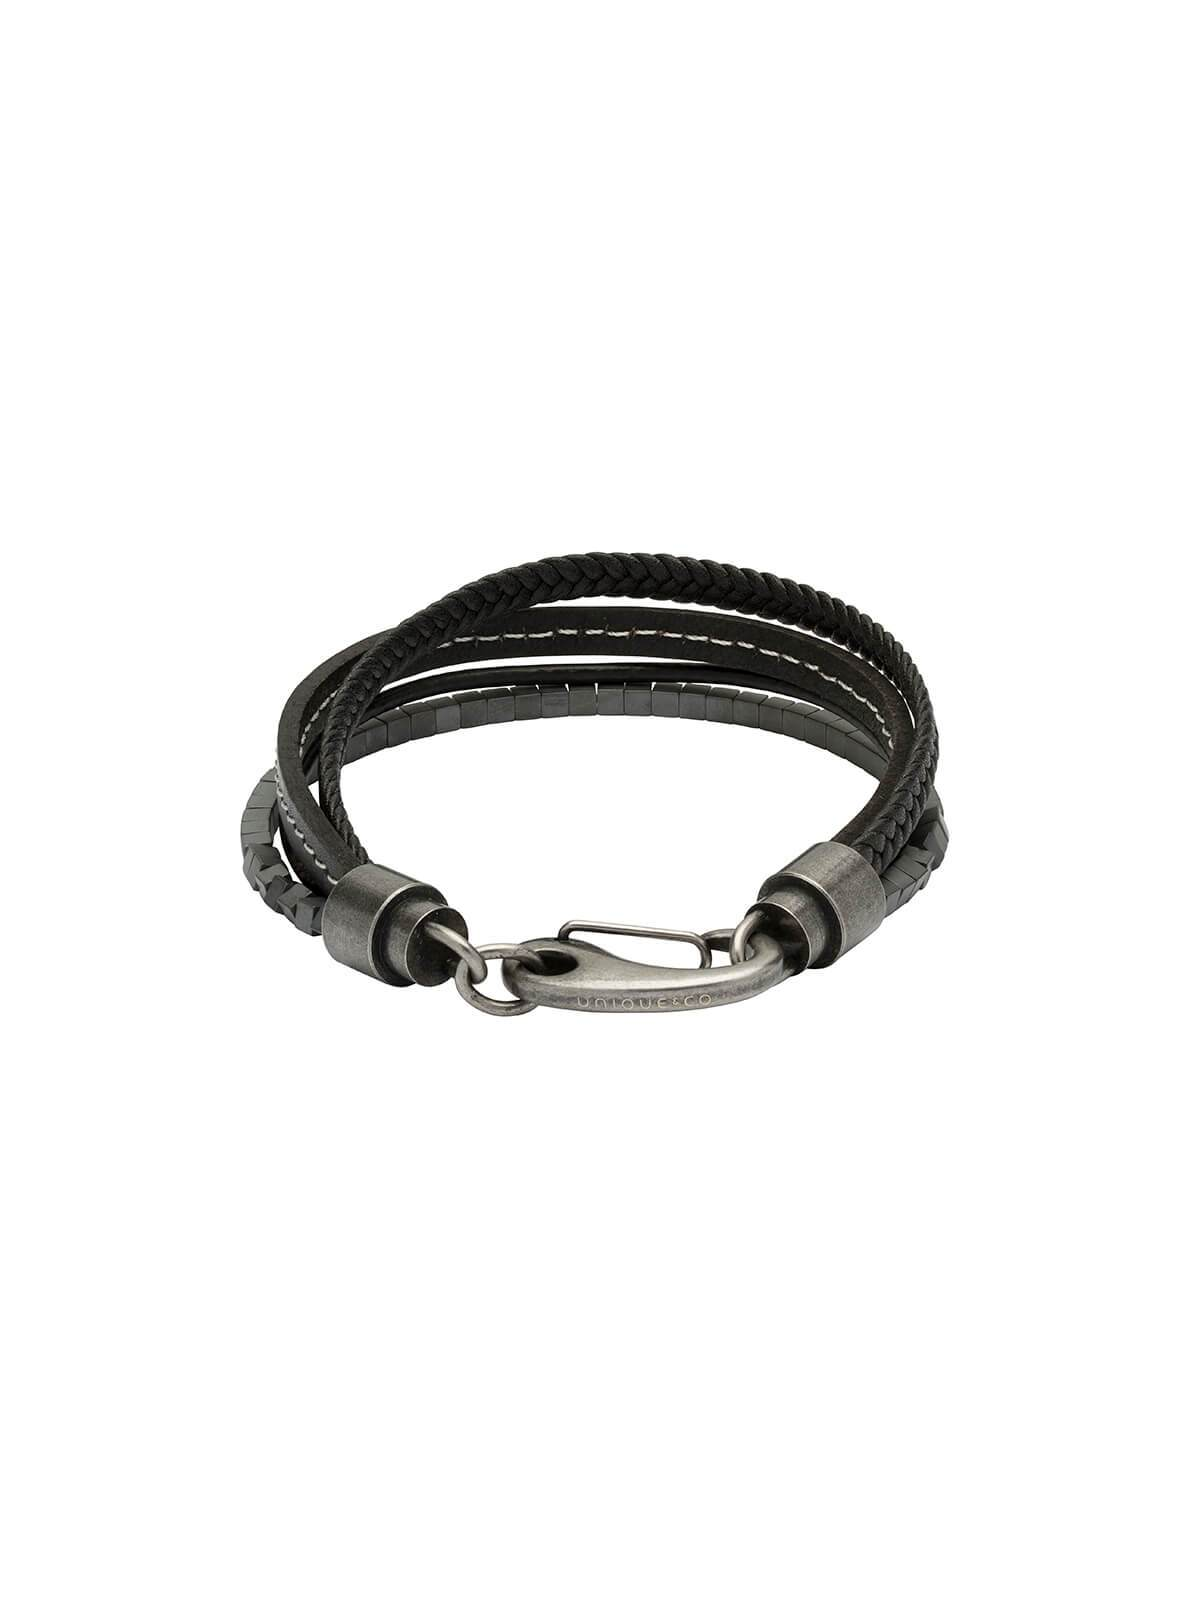 Unique & Co. 21cm Black Leather and Hematite Bead Bracelet B387WH/21CM